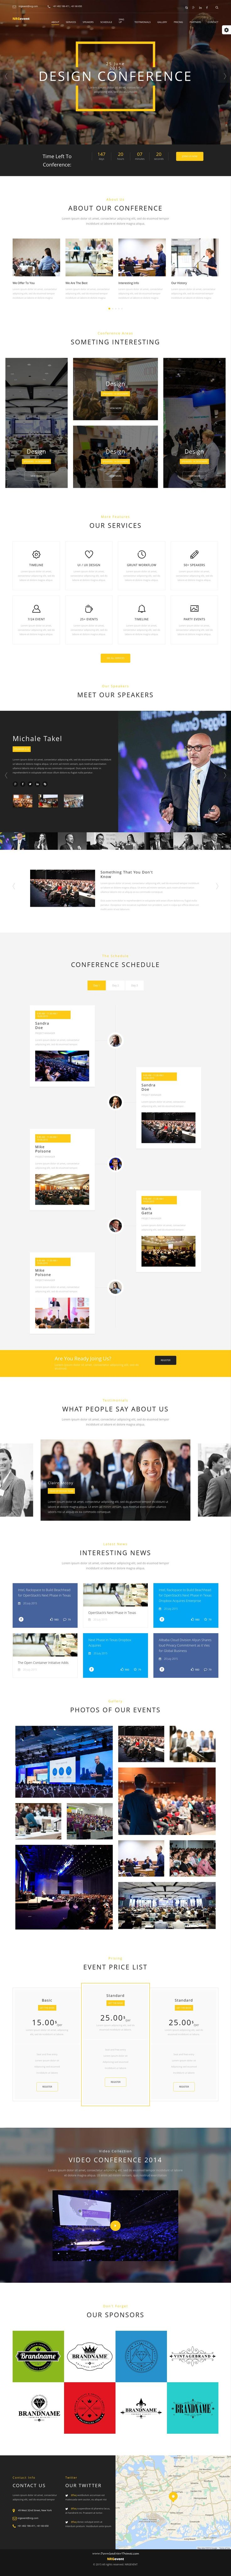 NRGevent is a clean and beautifully designed responsive multi-page Bootstrap HTML #template that is an ideal fit for a #conference, festival, music #event, #seminar or any other type of event.